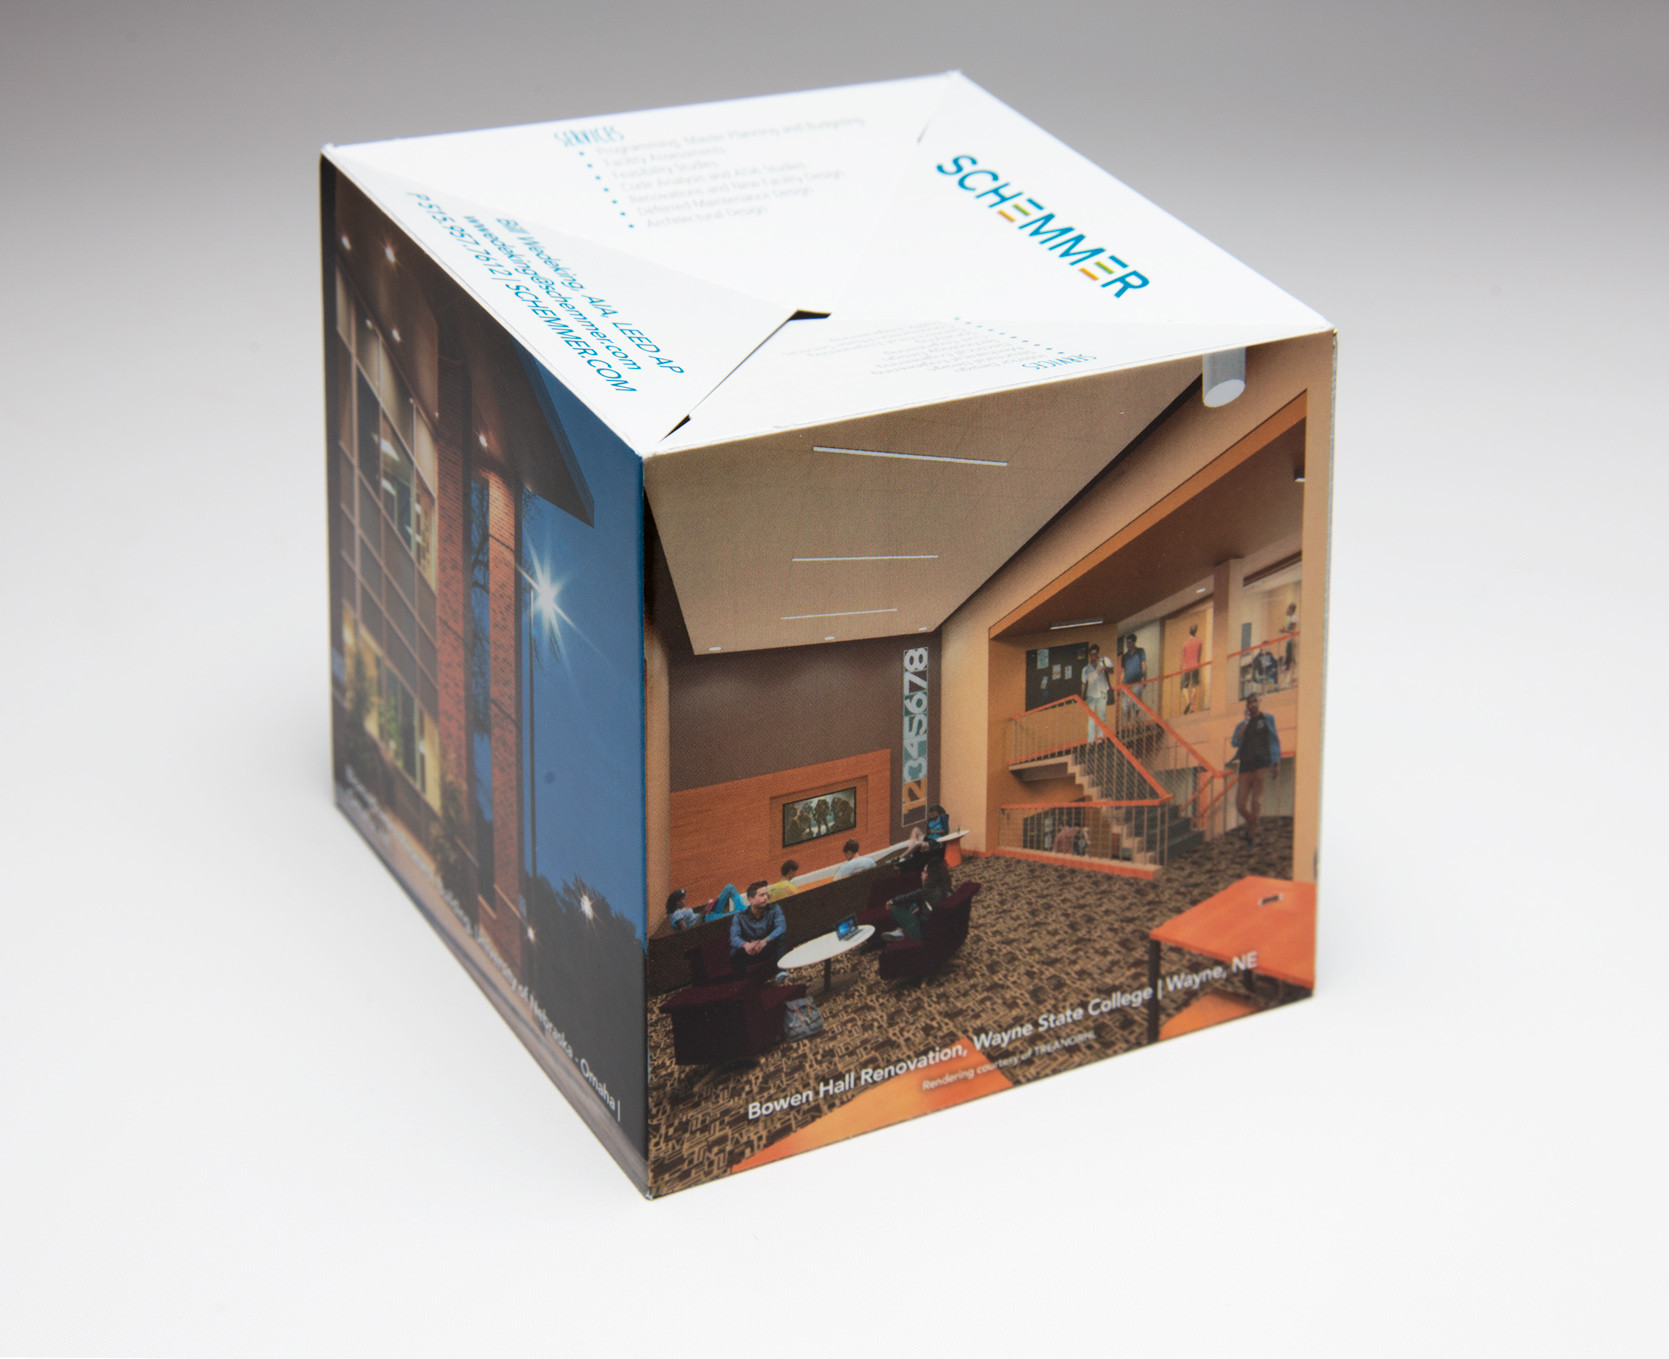 Schemmer Creates Memorable Experience With Pop-Up Cube Mailer